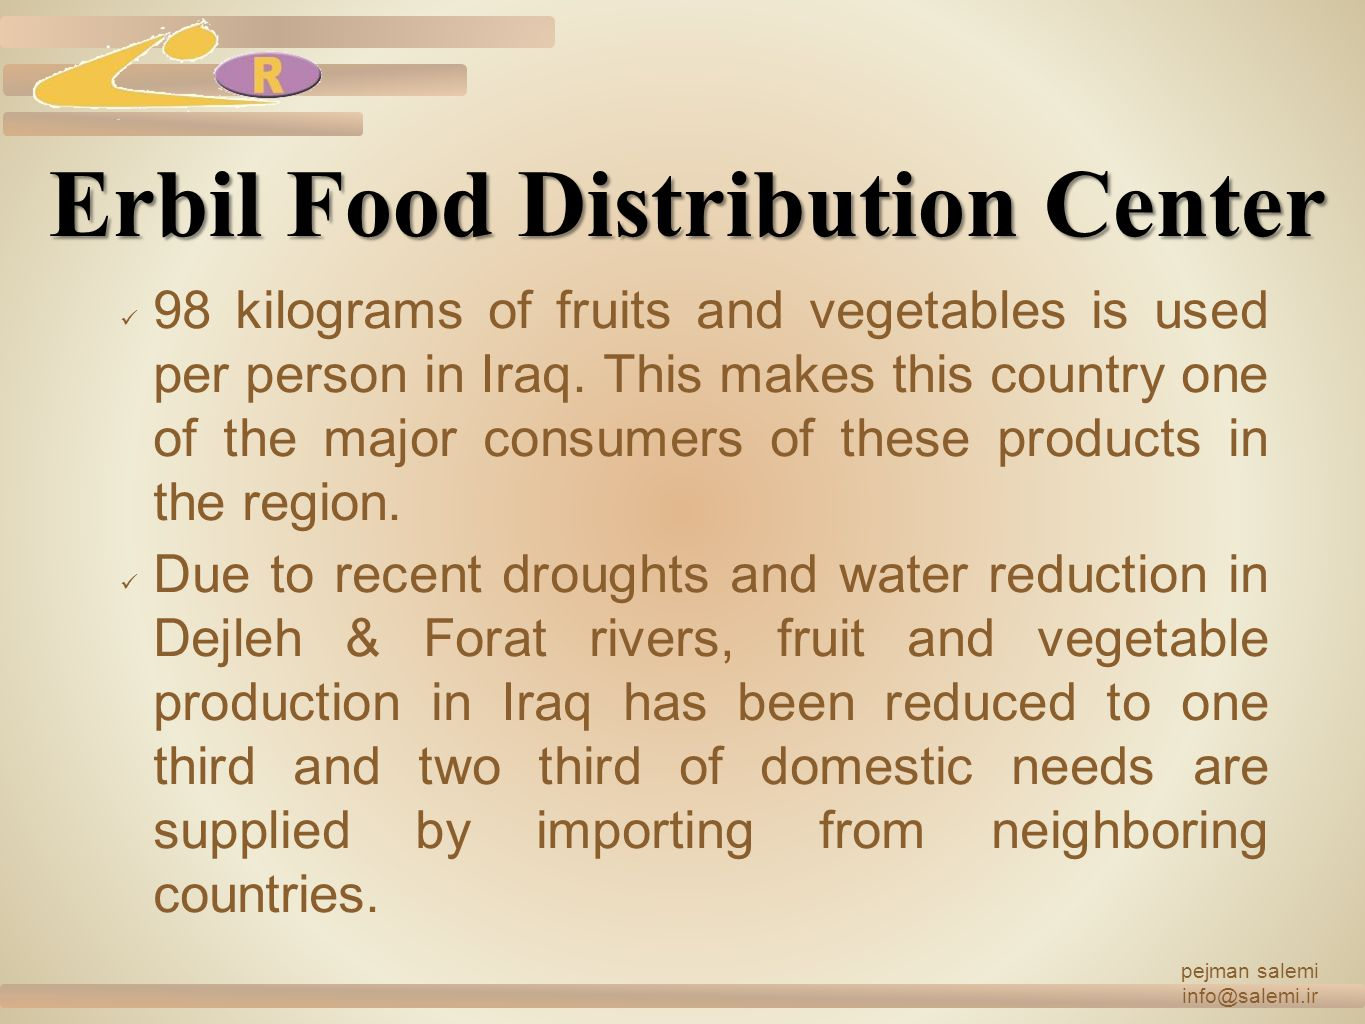 Erbil Food Distribution Center 98 kilograms of fruits and vegetables is used per person in Iraq.